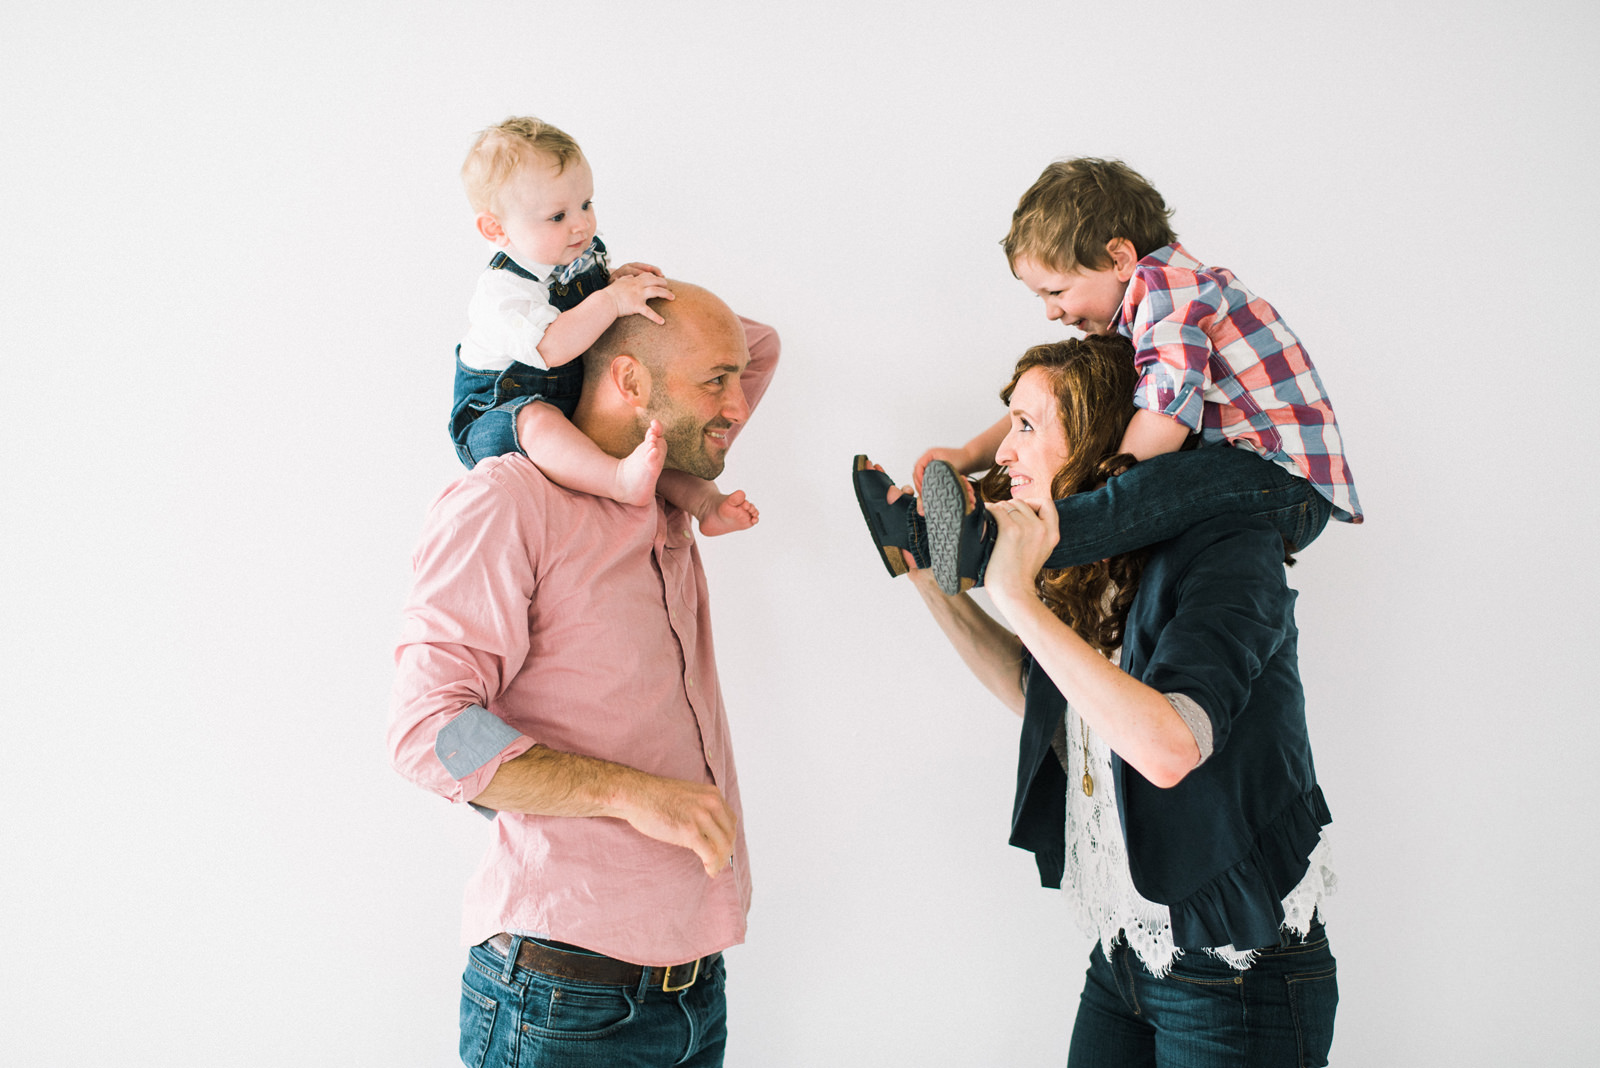 119-natural-light-studio-family-portraits-in-seattle-washington.jpg